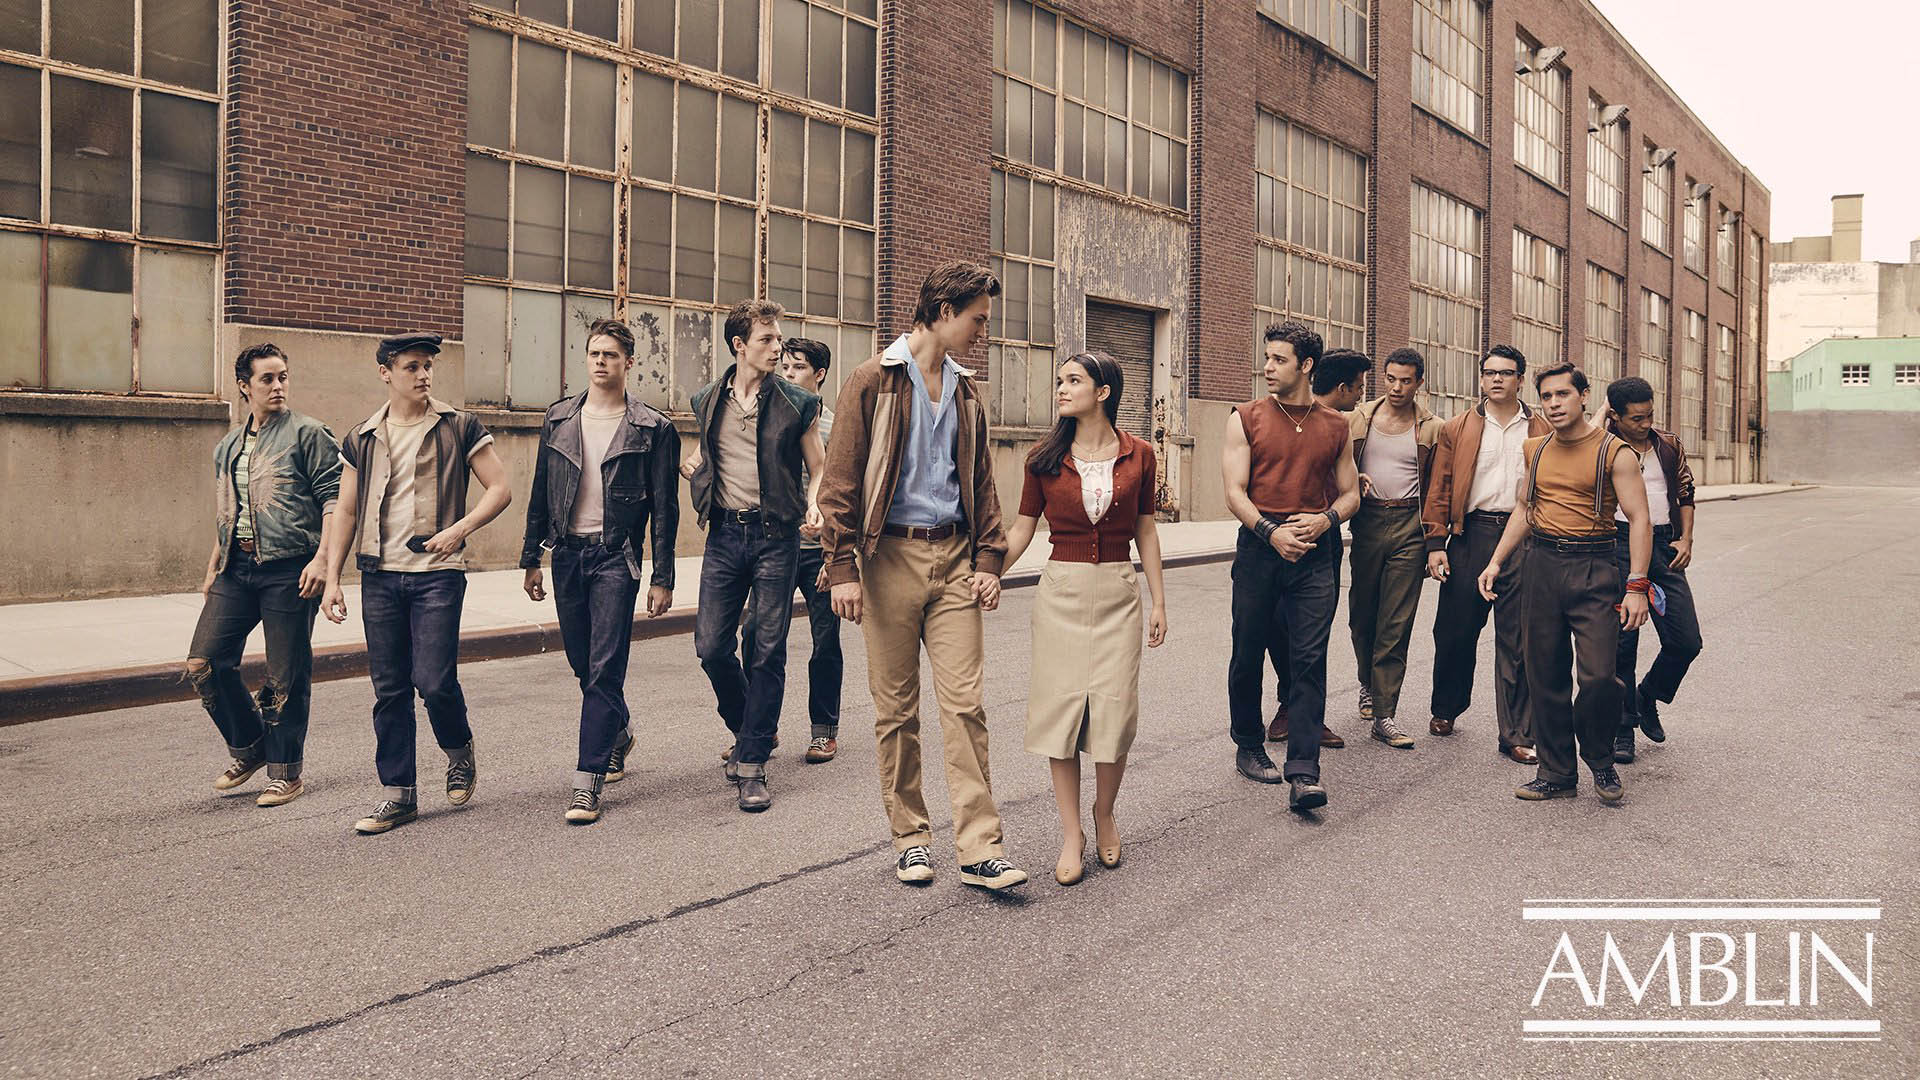 West Side Story - Official Images - 01